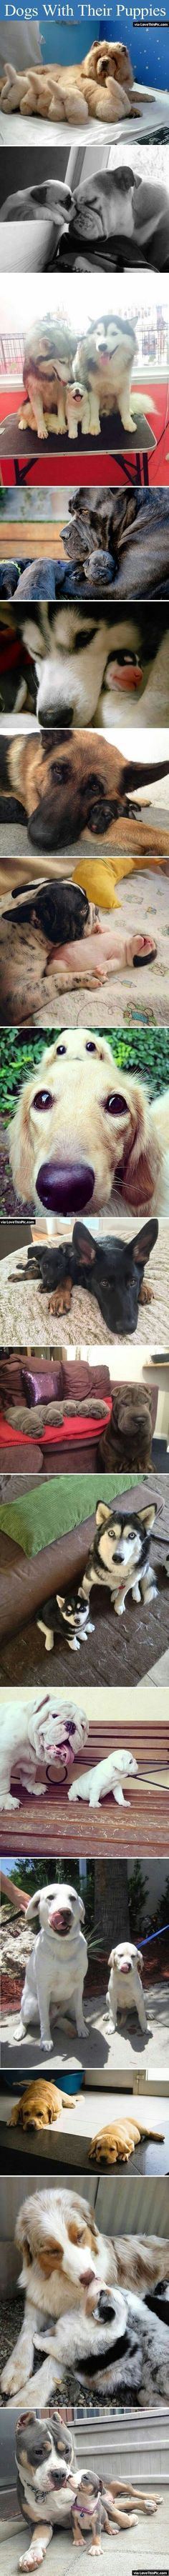 Dogs With Their Puppies cute animals cat cats adorable animal kittens pets kitten funny pictures funny animals funny cats funny dog images